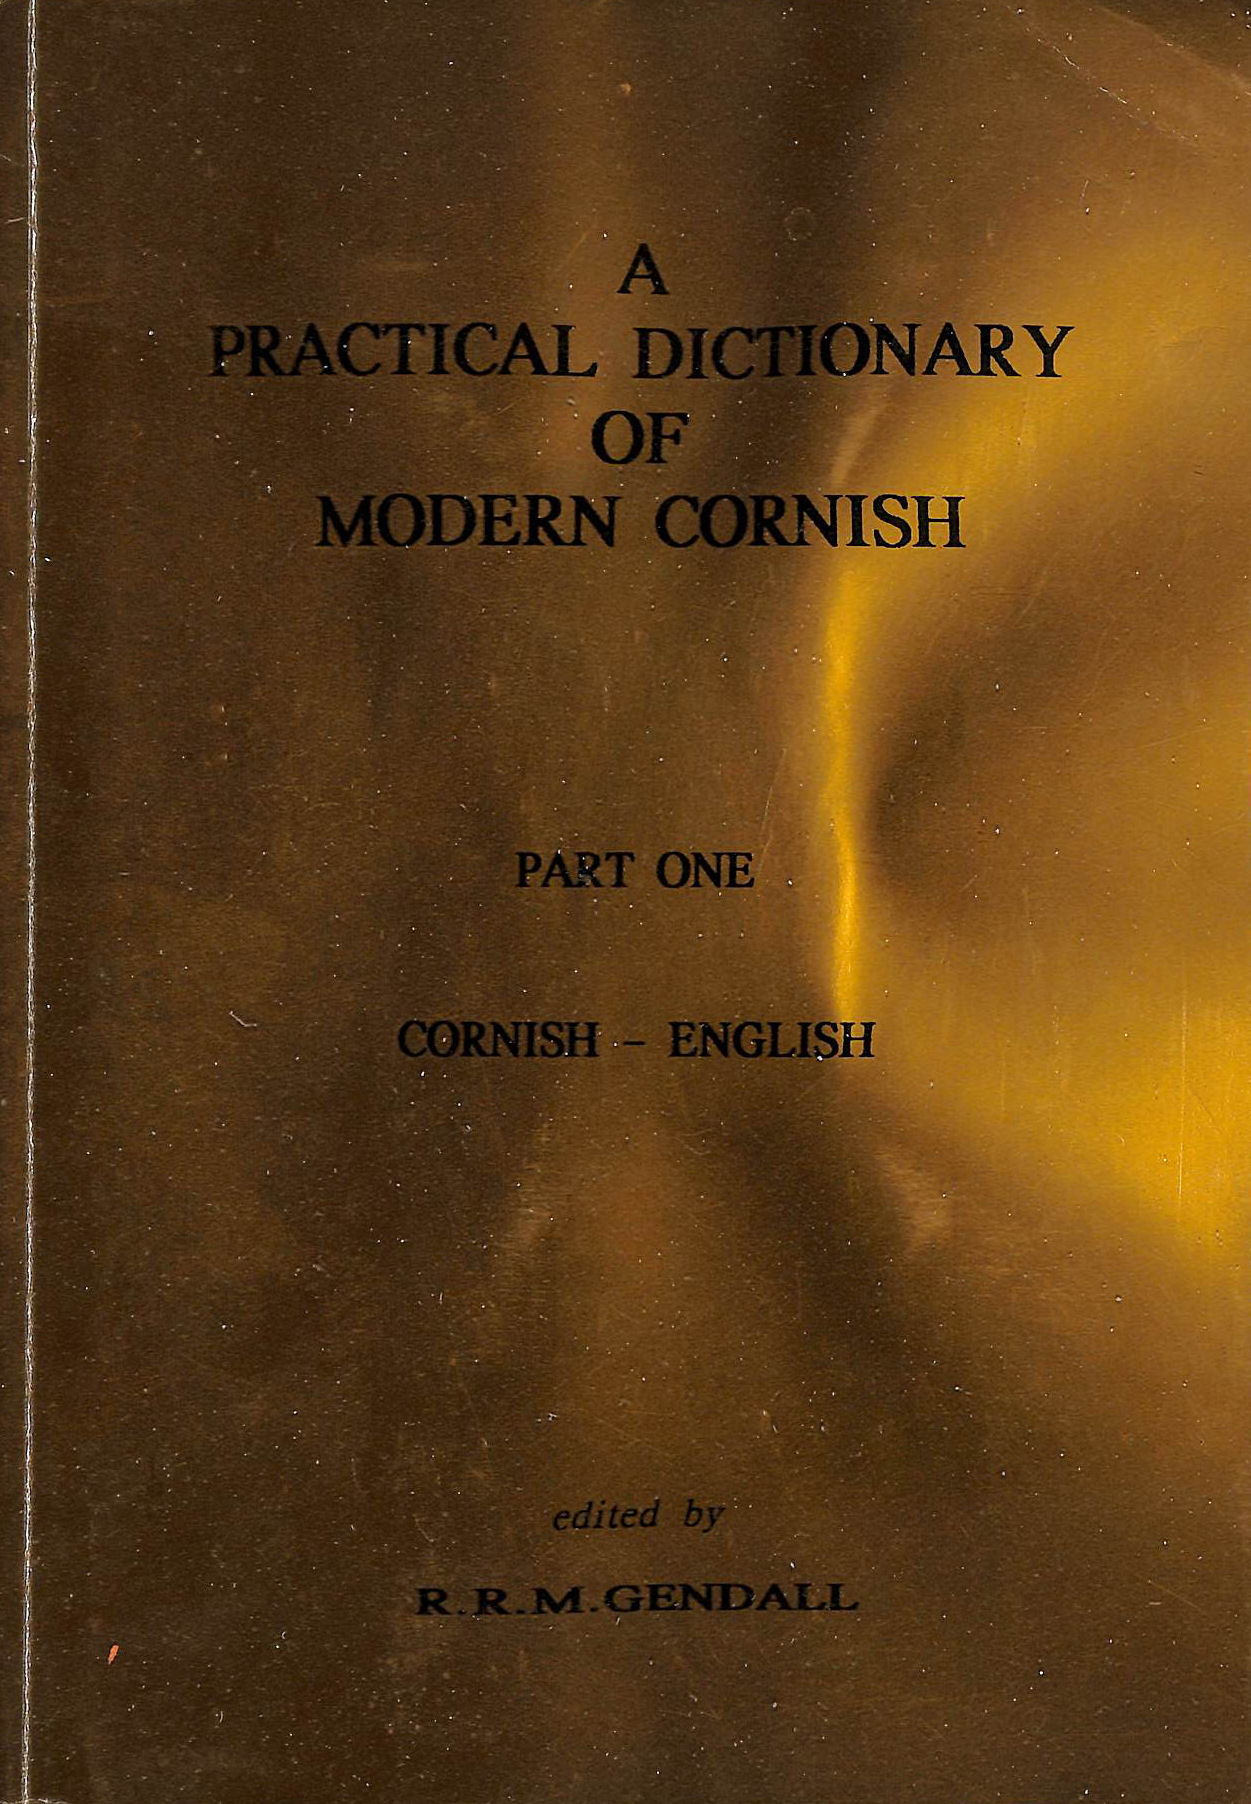 Image for A Practical Dictionary of Modern Cornish Part One : Cornish-English